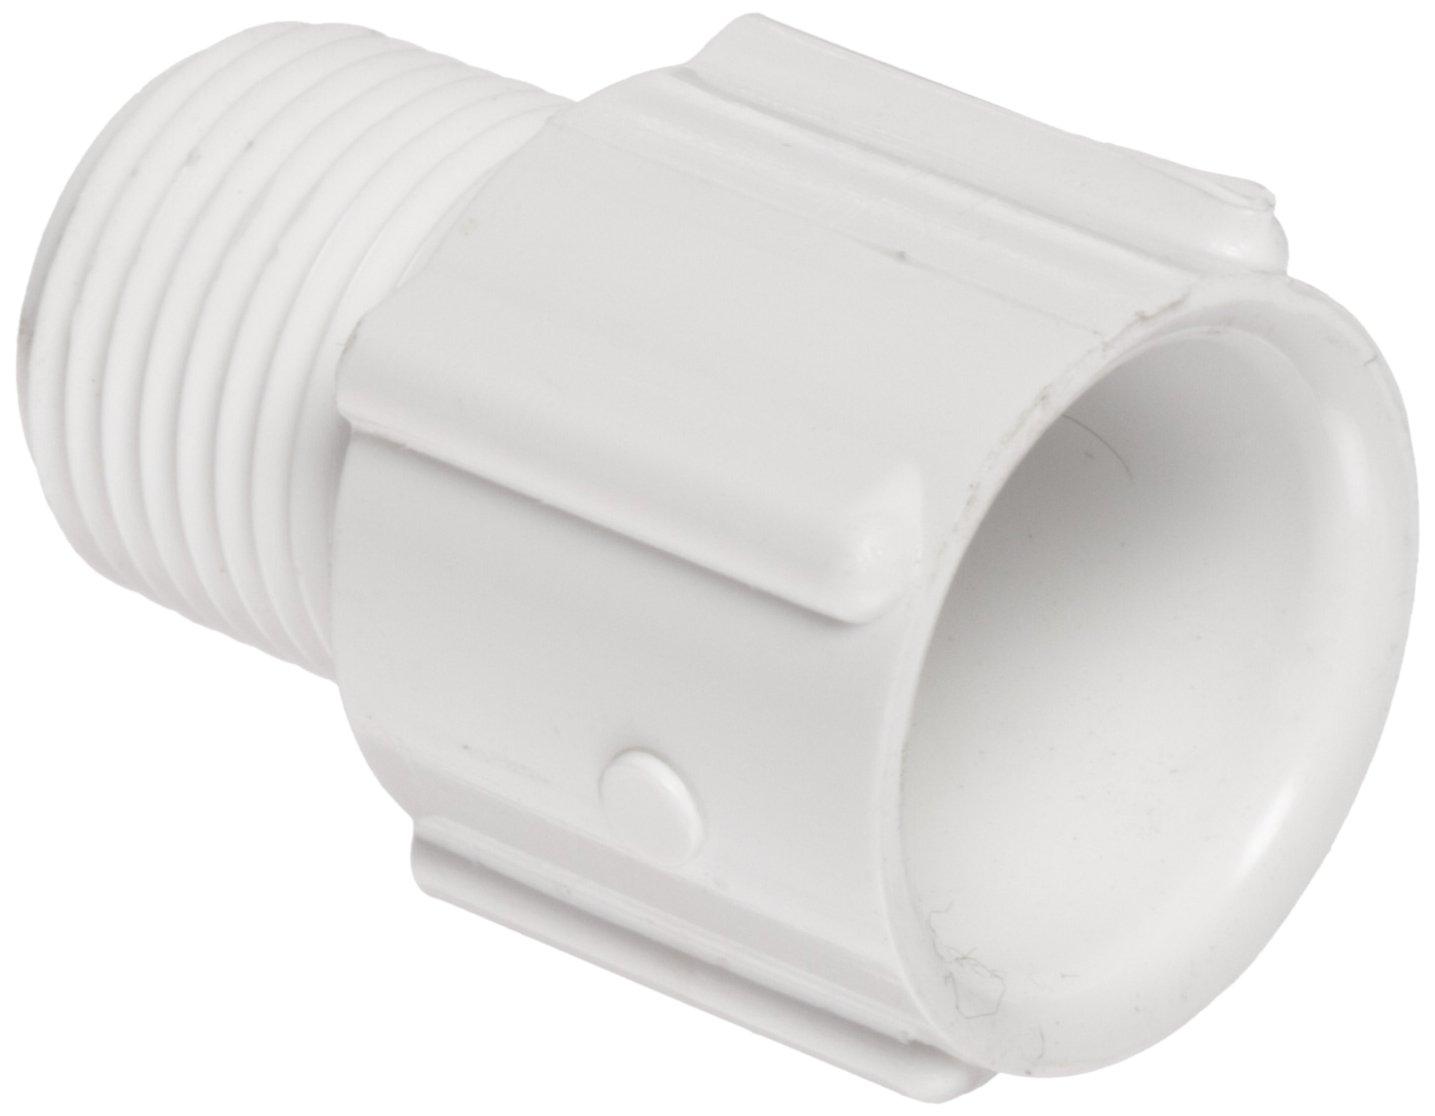 Pack of 10 Adapter White 3//4 Socket x NPT Male Schedule 40 Spears 436-007 PVC Pipe Fitting